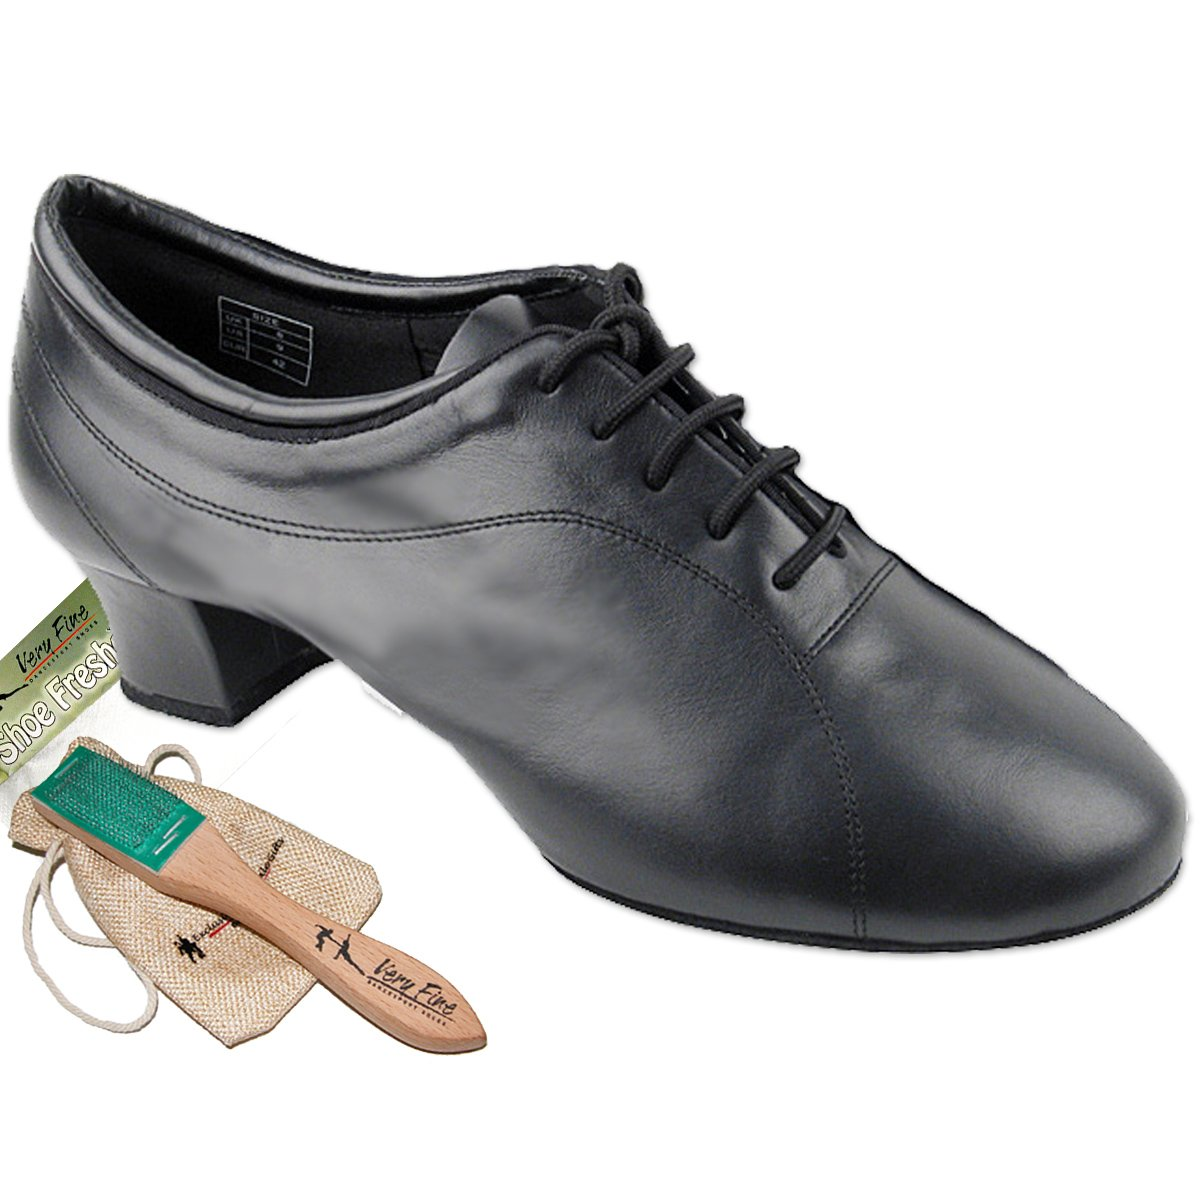 Mens Ballroom Dance Shoes Tango Wedding Salsa Latin Dance Shoes CD9316EB - Very Fine 1.5